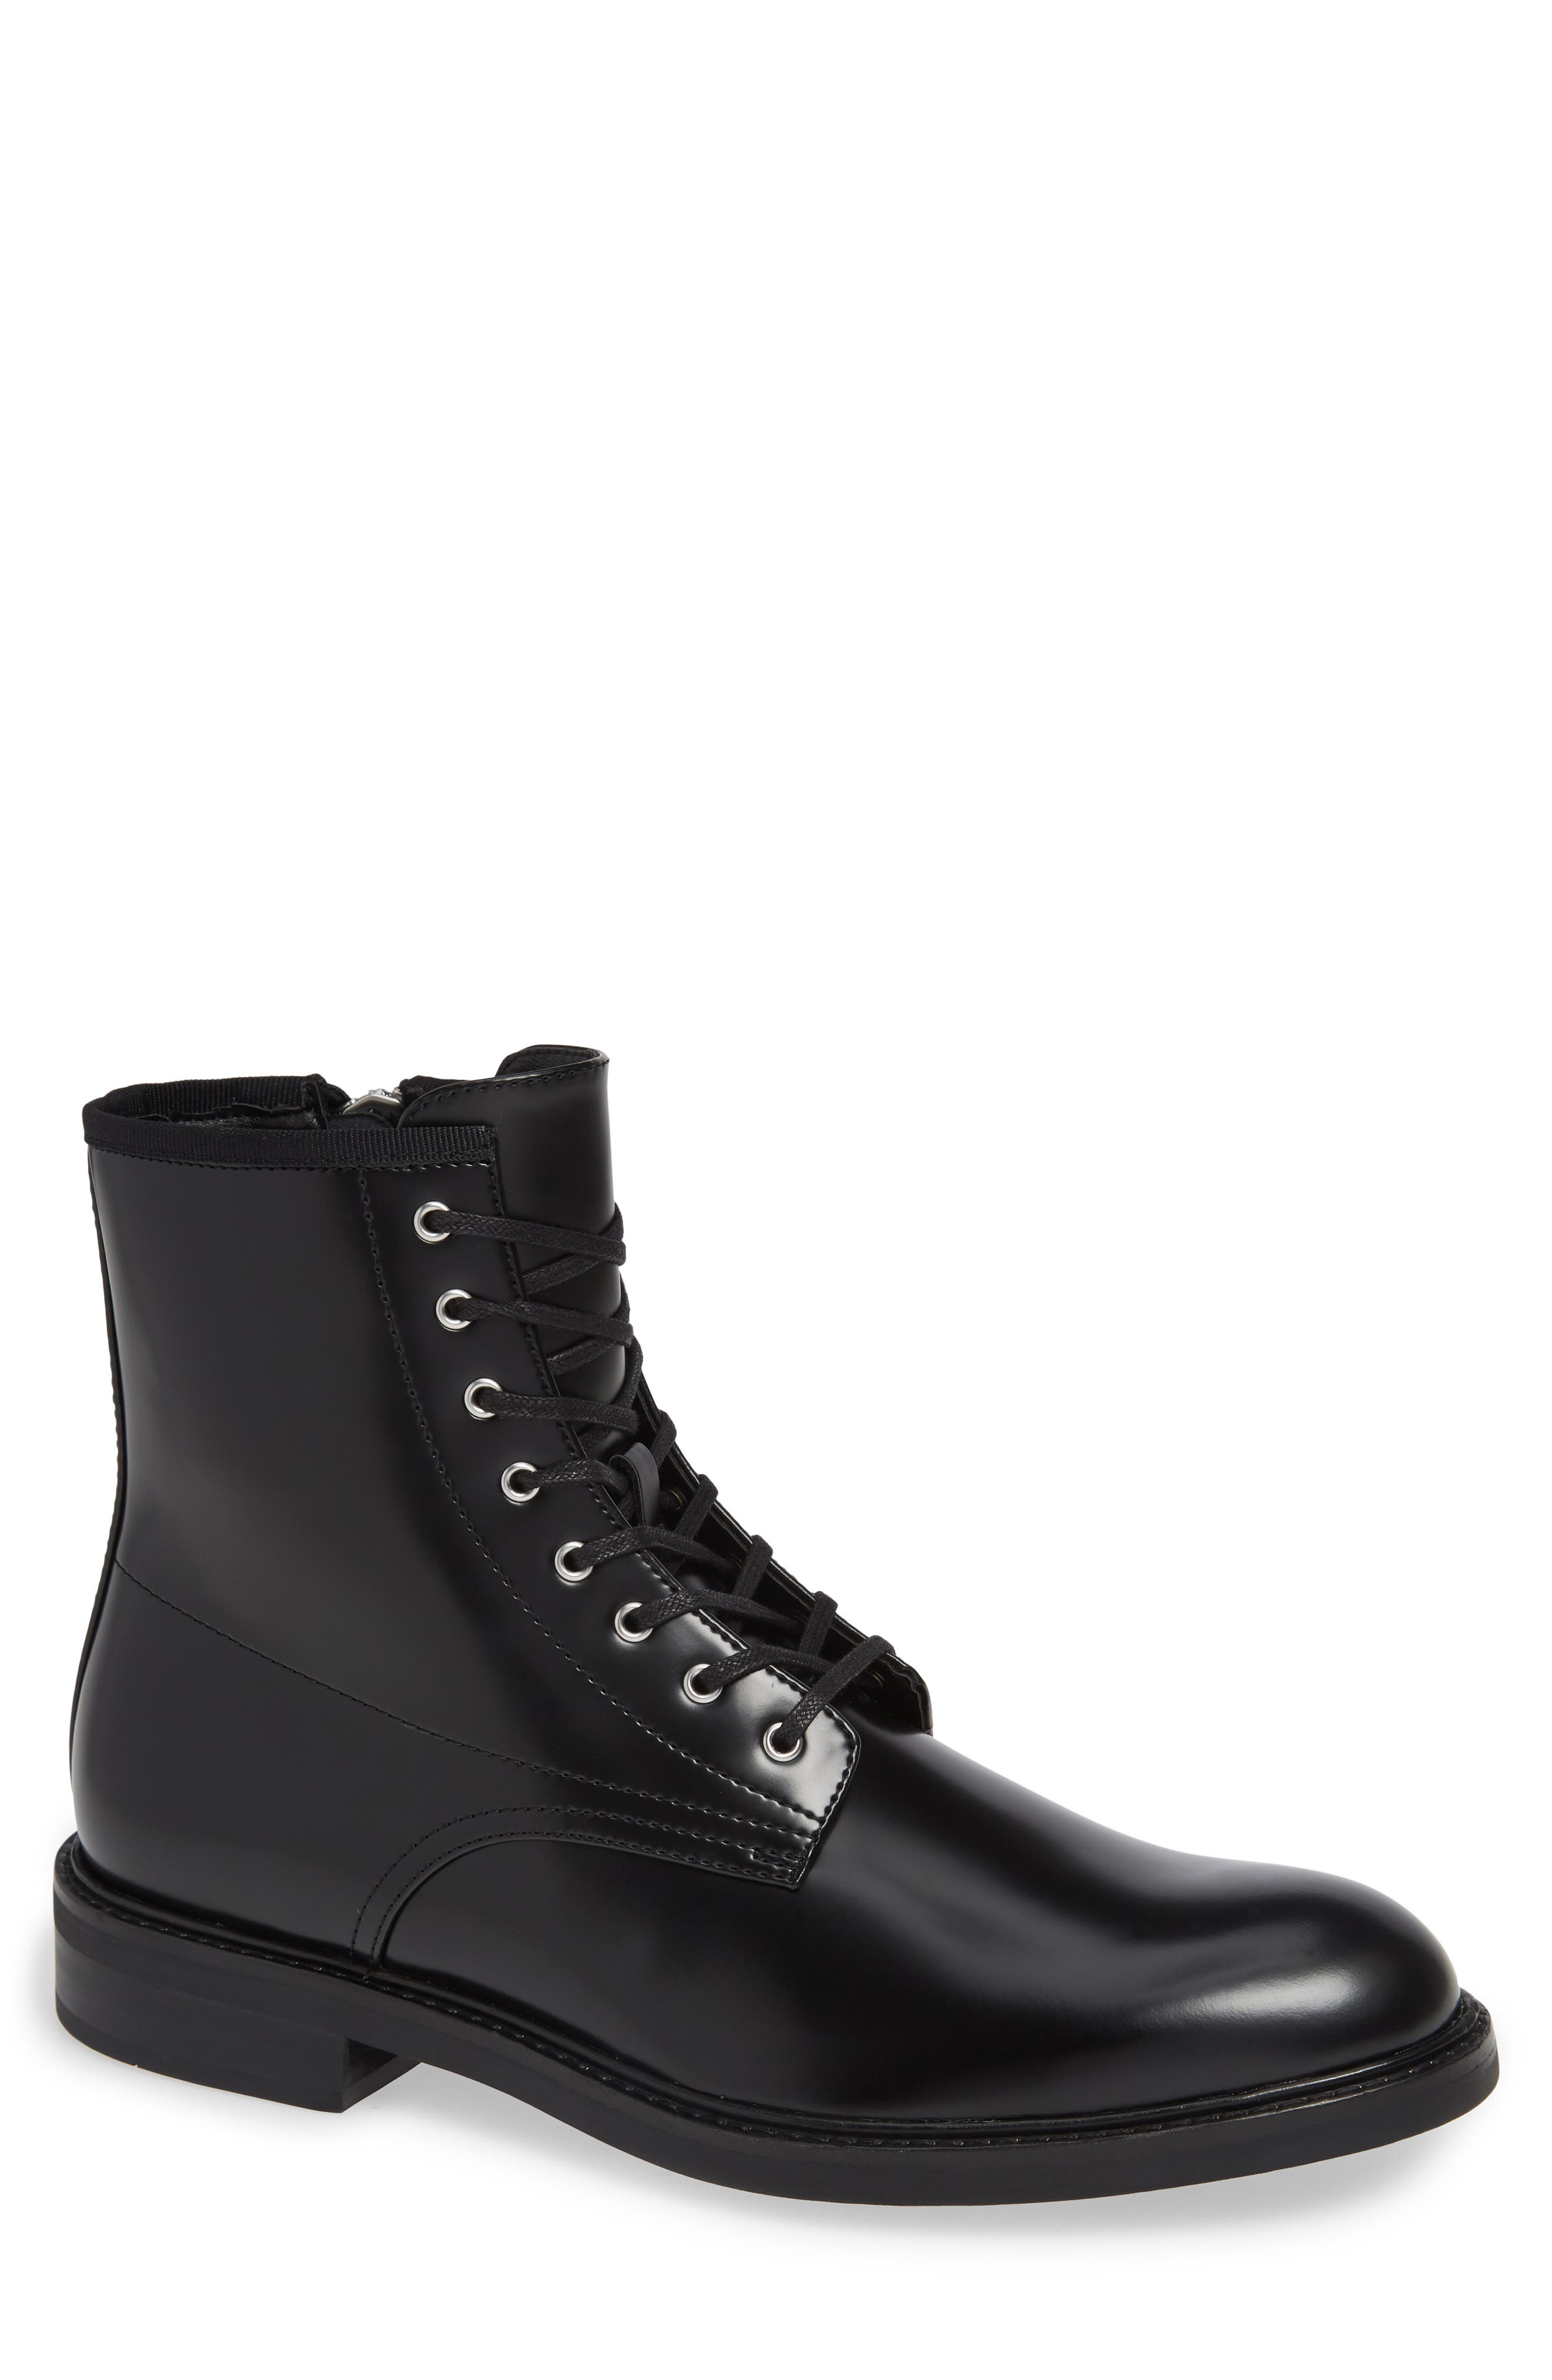 Keeler Combat Boot,                         Main,                         color, BLACK LEATHER